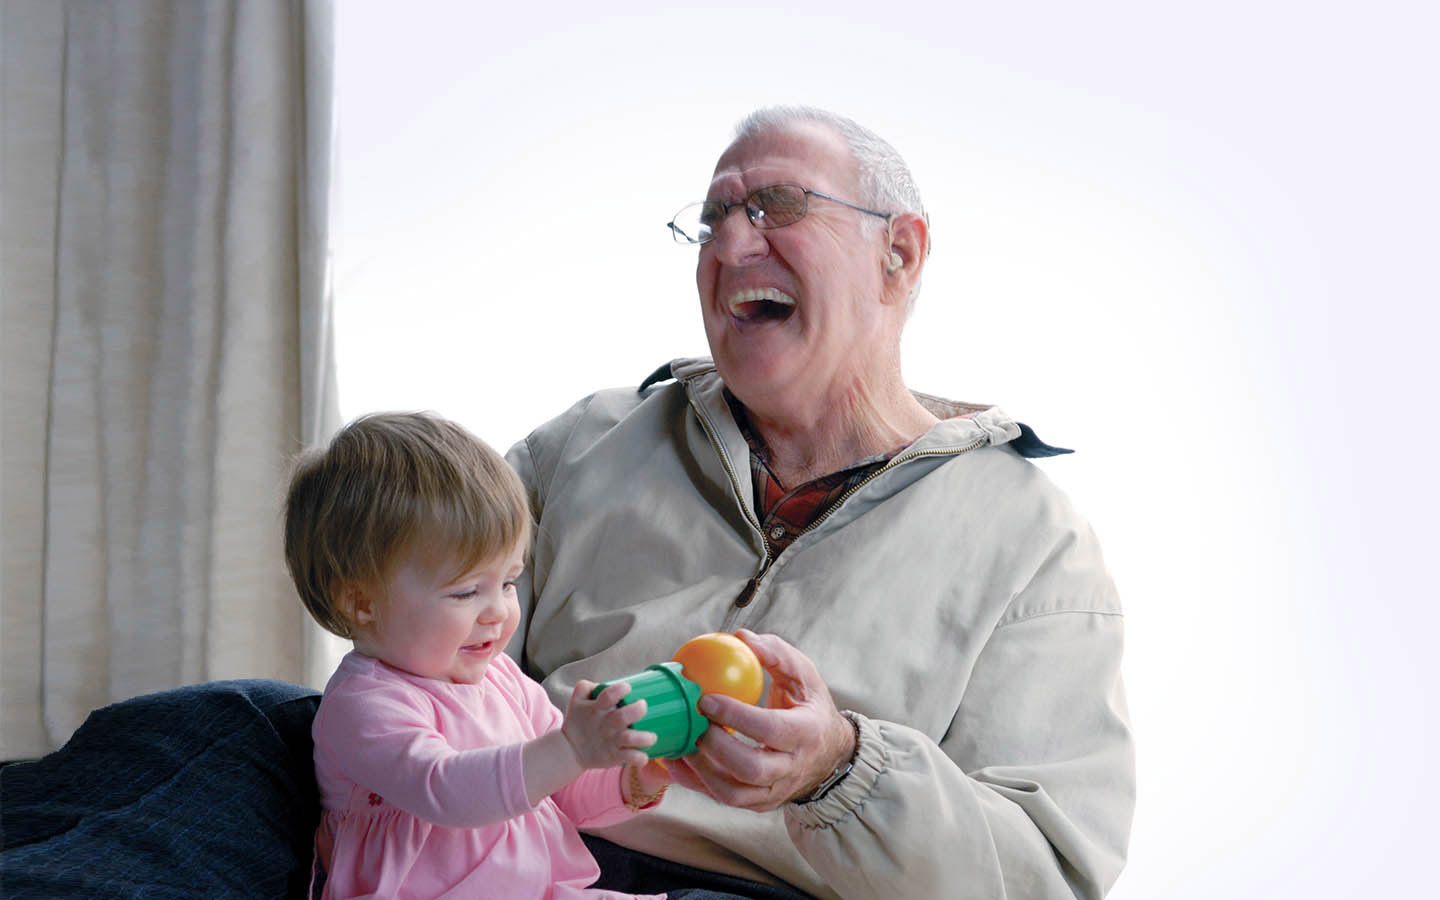 Grandfather laughs as his grandaughter sits on his lap